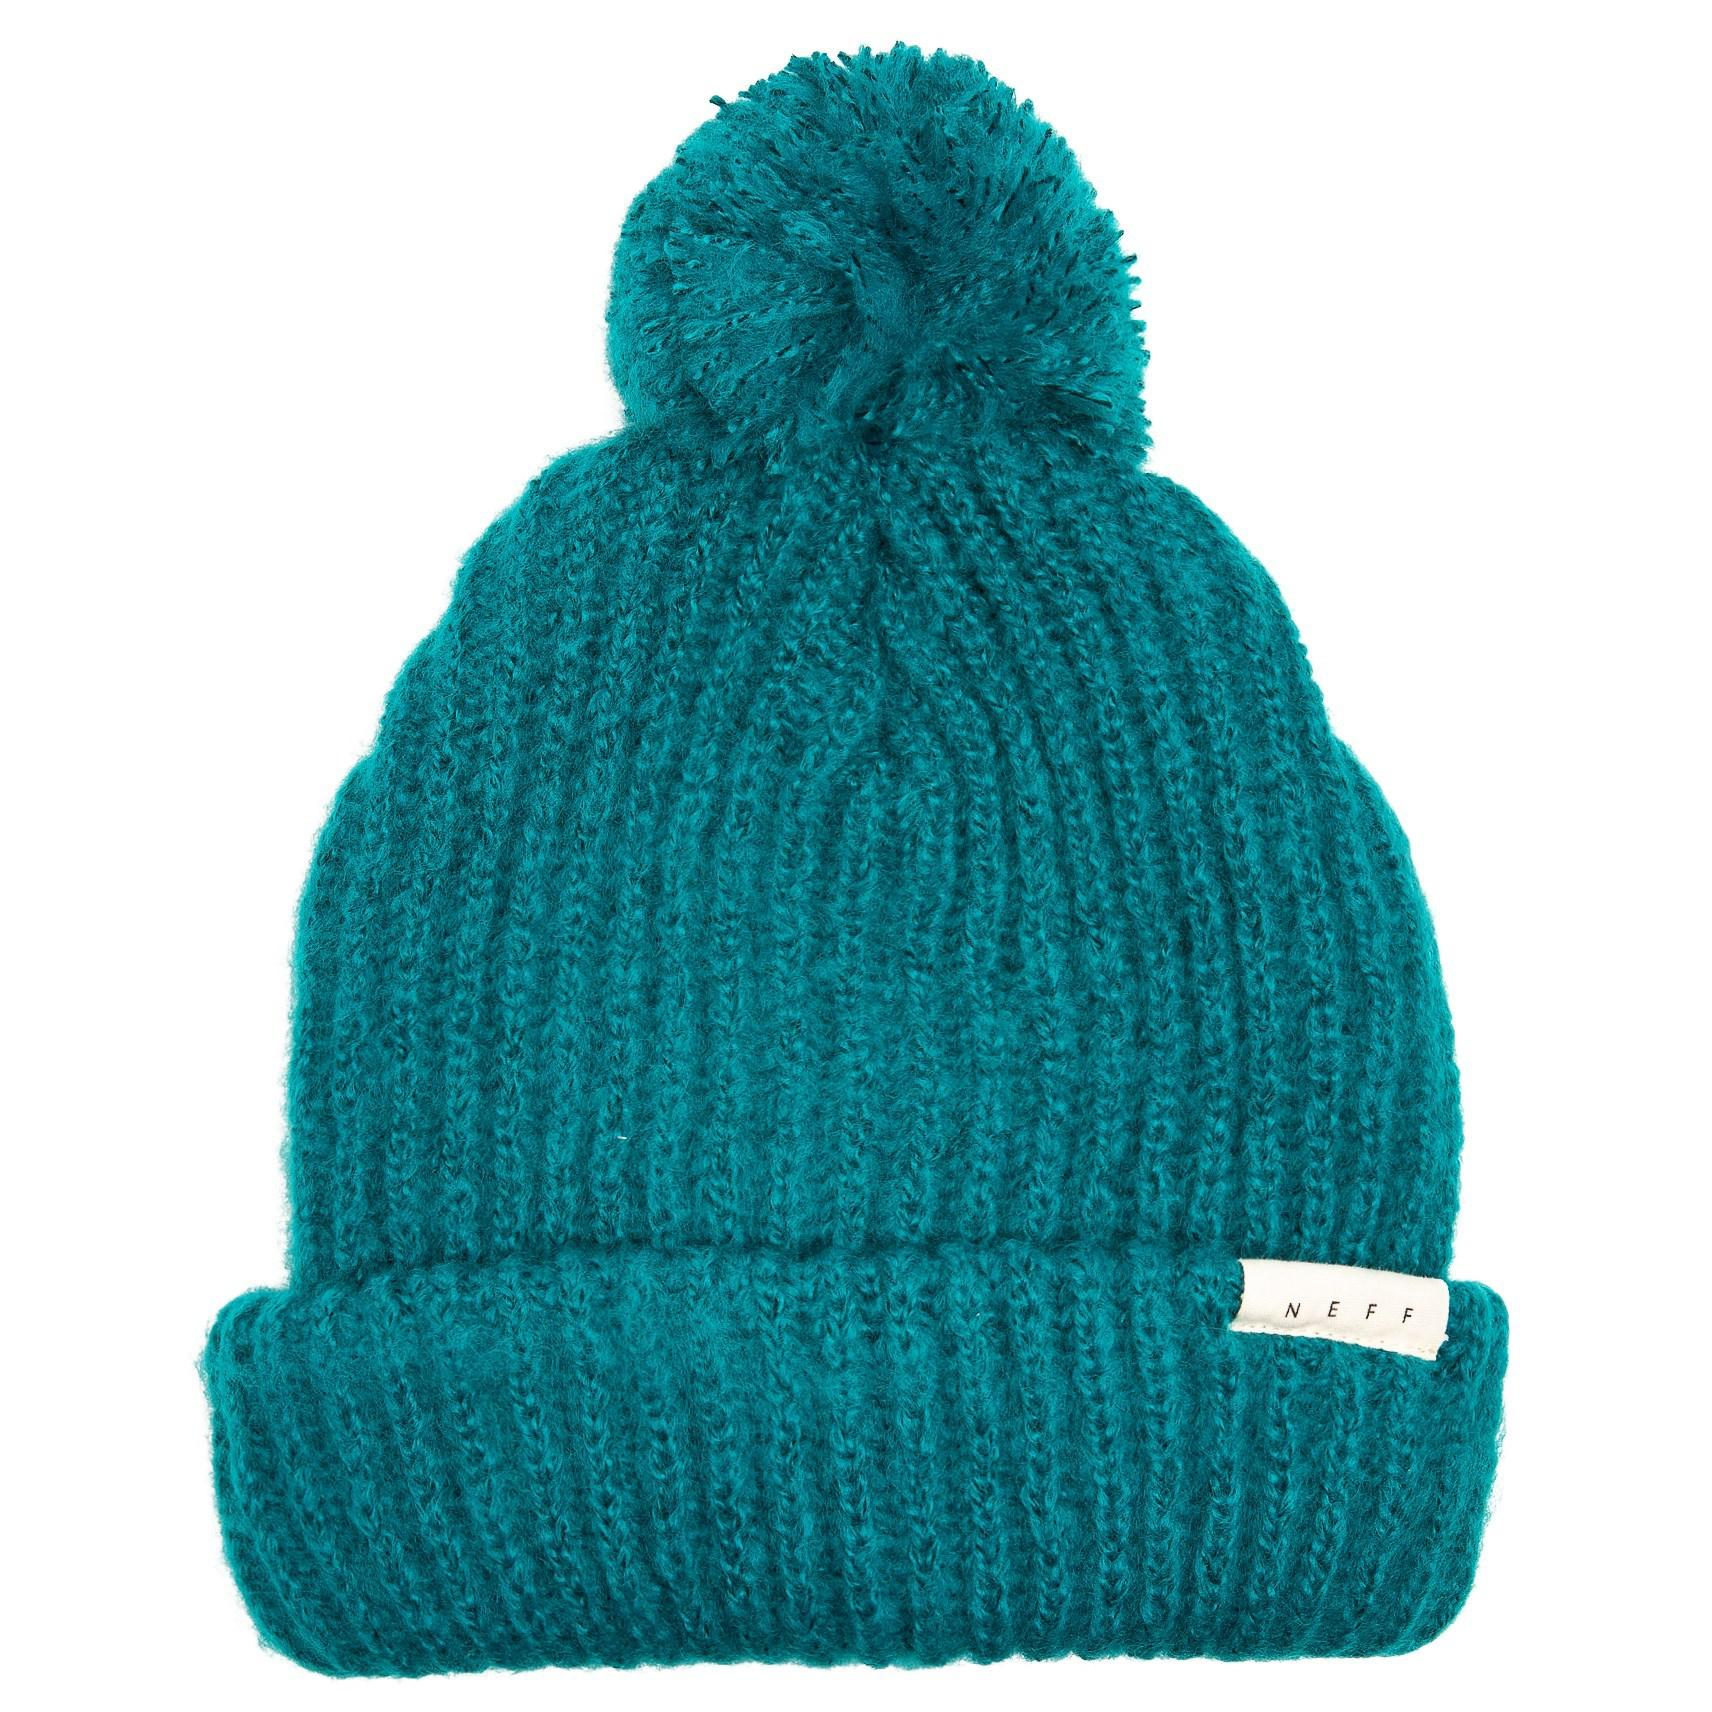 55b5700ab28 Lyst - Neff Muffin Beanie With Pom (for Women) in Blue